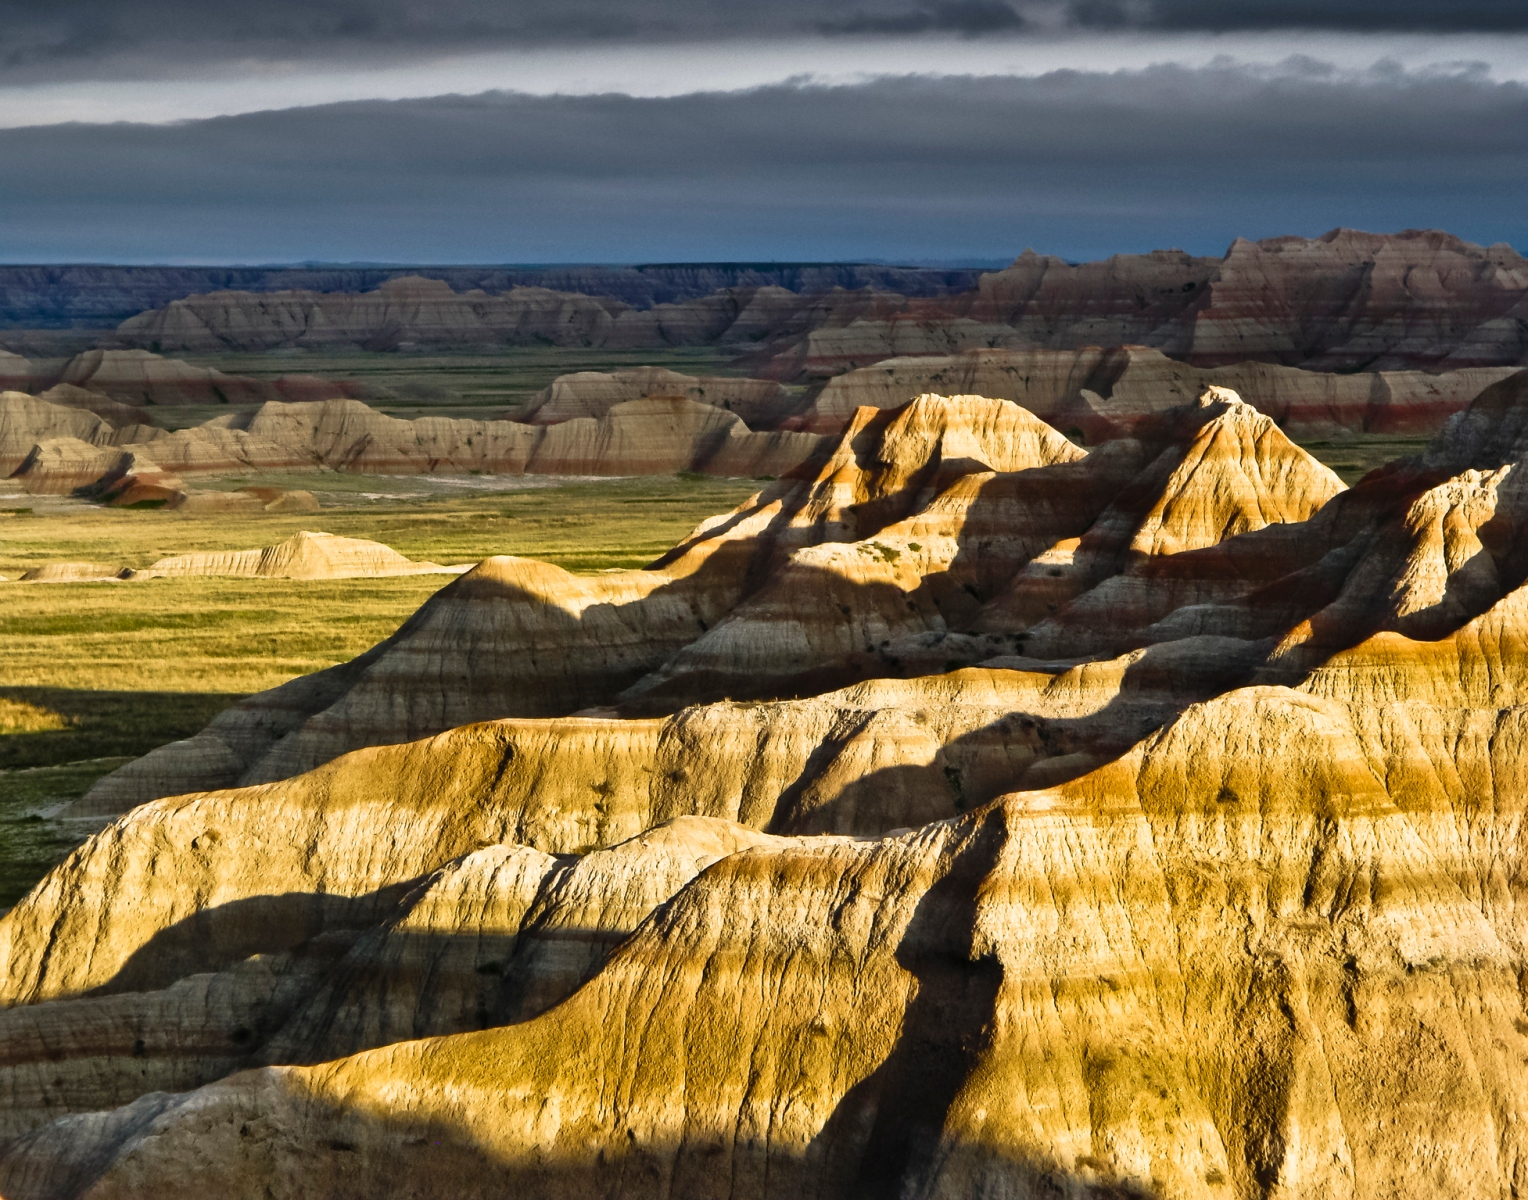 Distant clouds made for interesting background against a lightened foreground.  Morning sunrise shadows added a little extra to the mood.  Badlands National Park. Finalist in The Nature Conservancy's 2010, 5th Annual Digital Photo Contest (Getty)